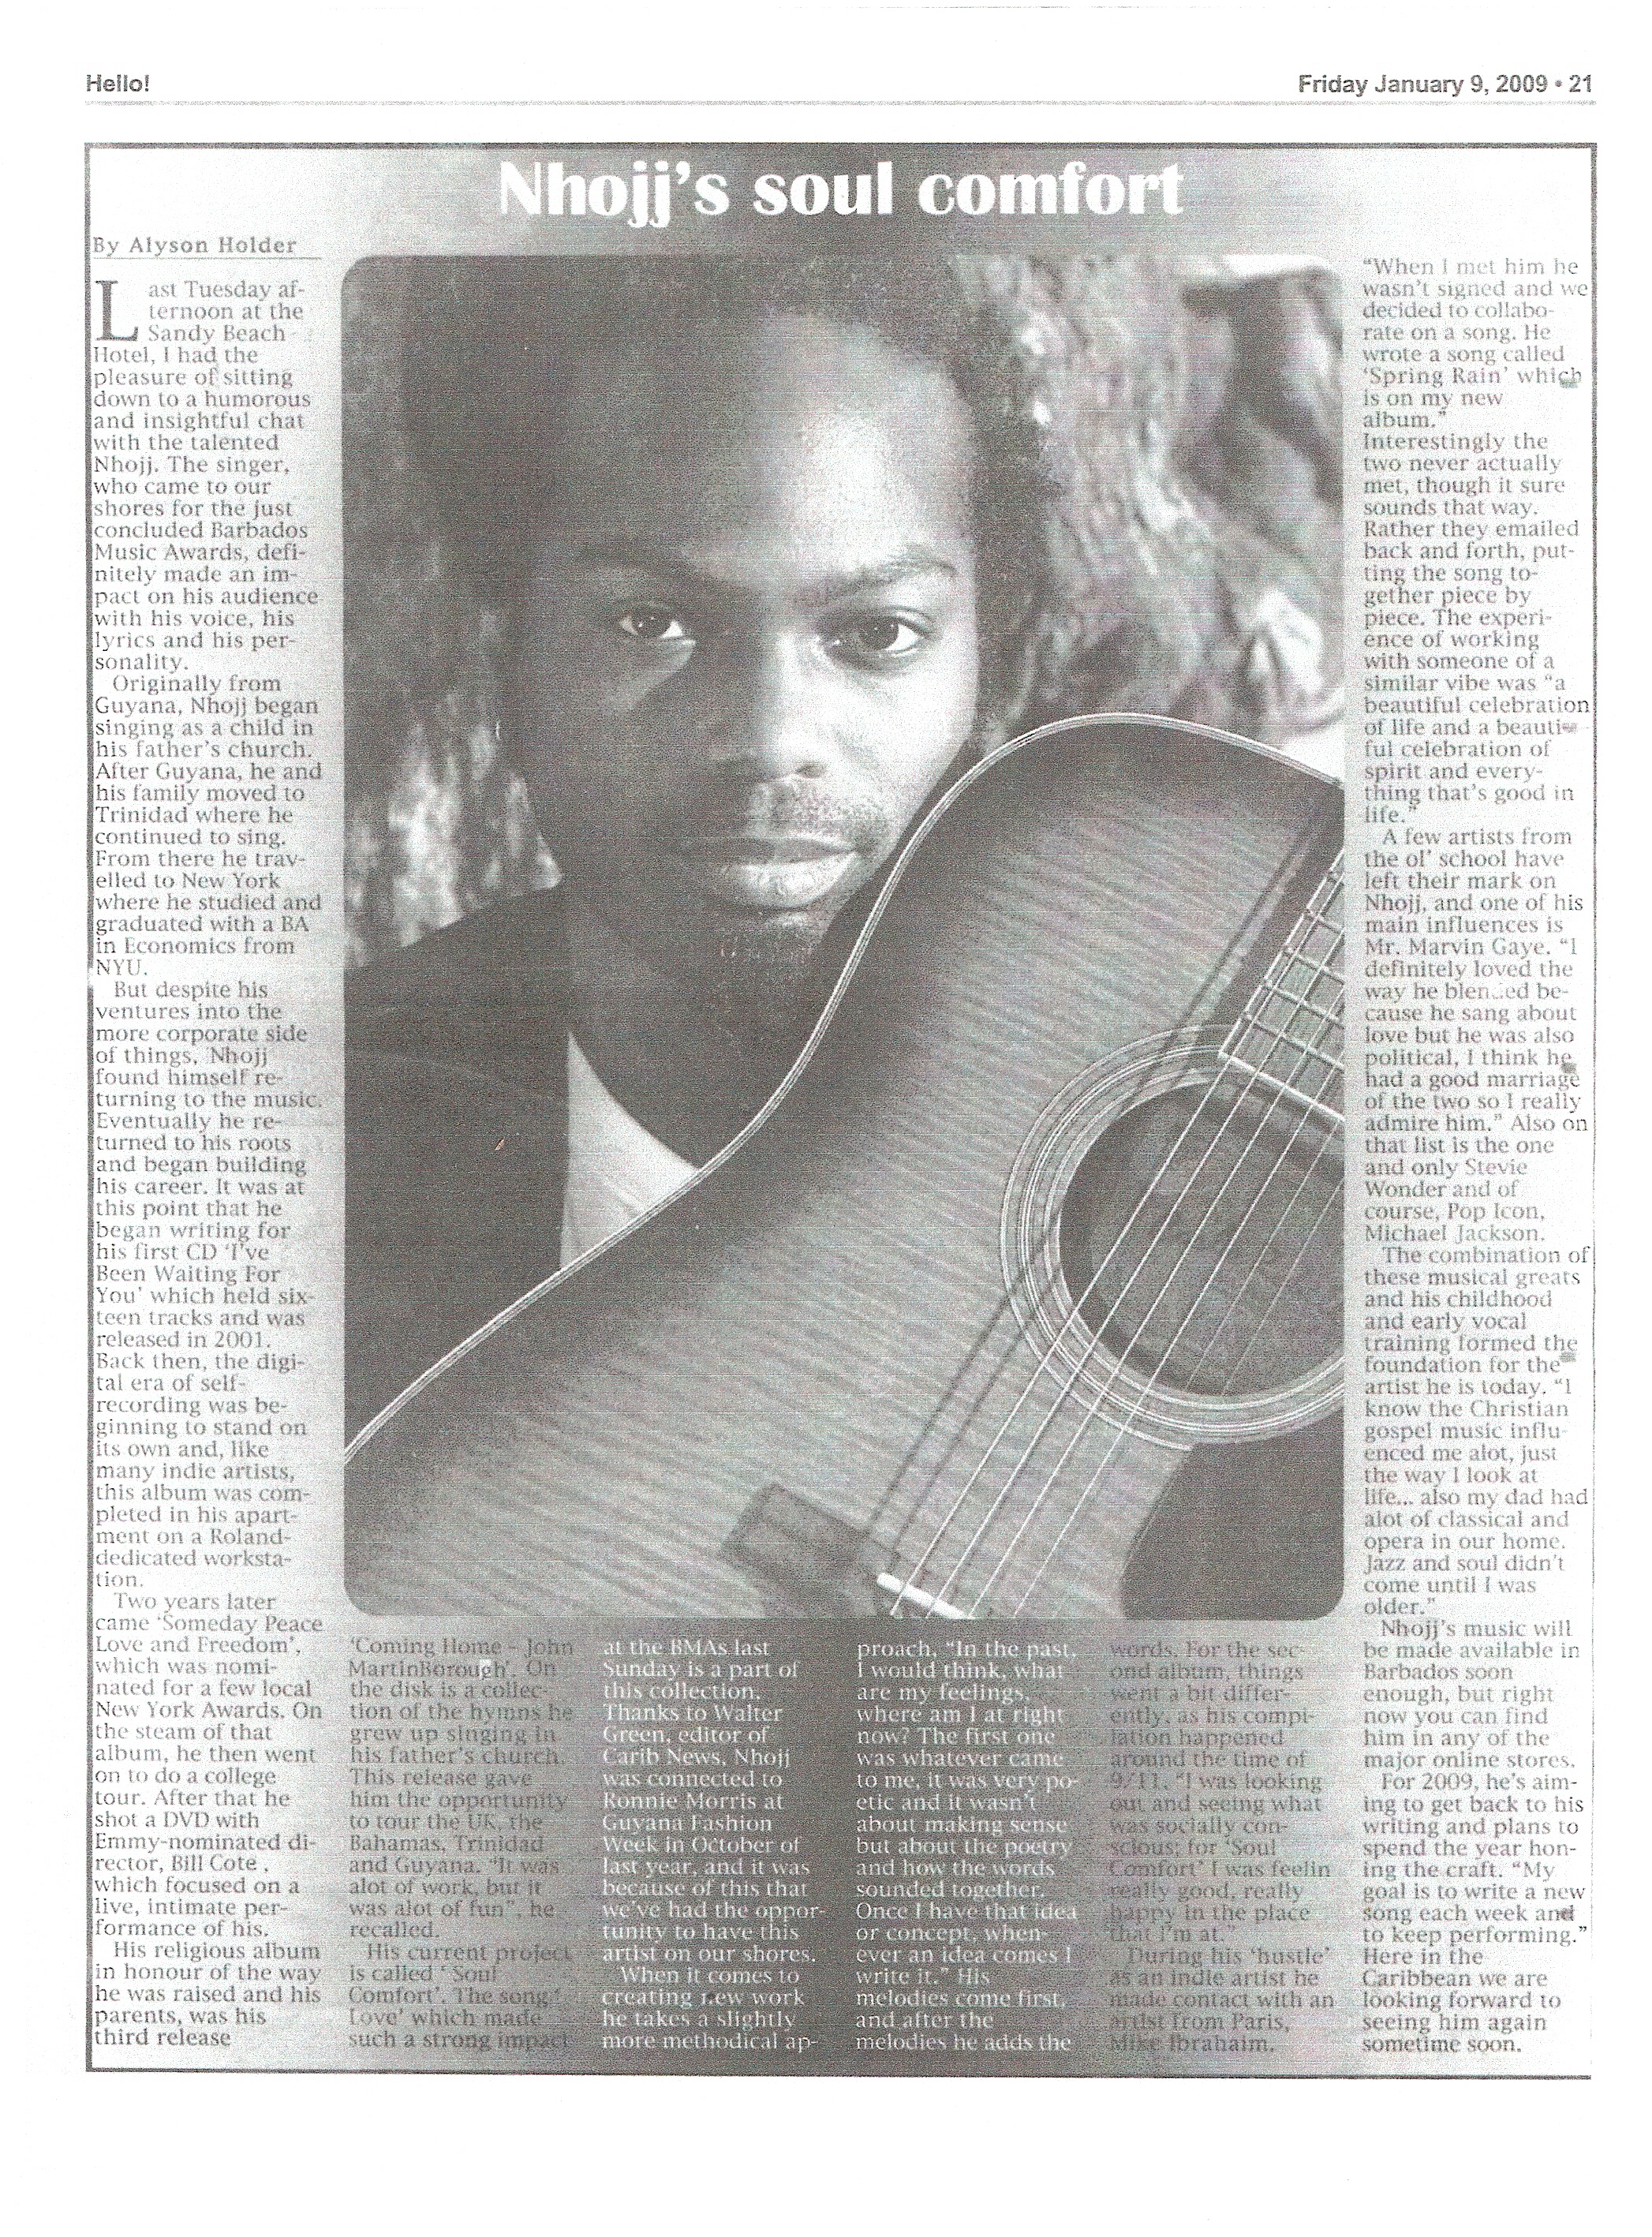 Nhojj Article in the Barbados Advocate Newspaper